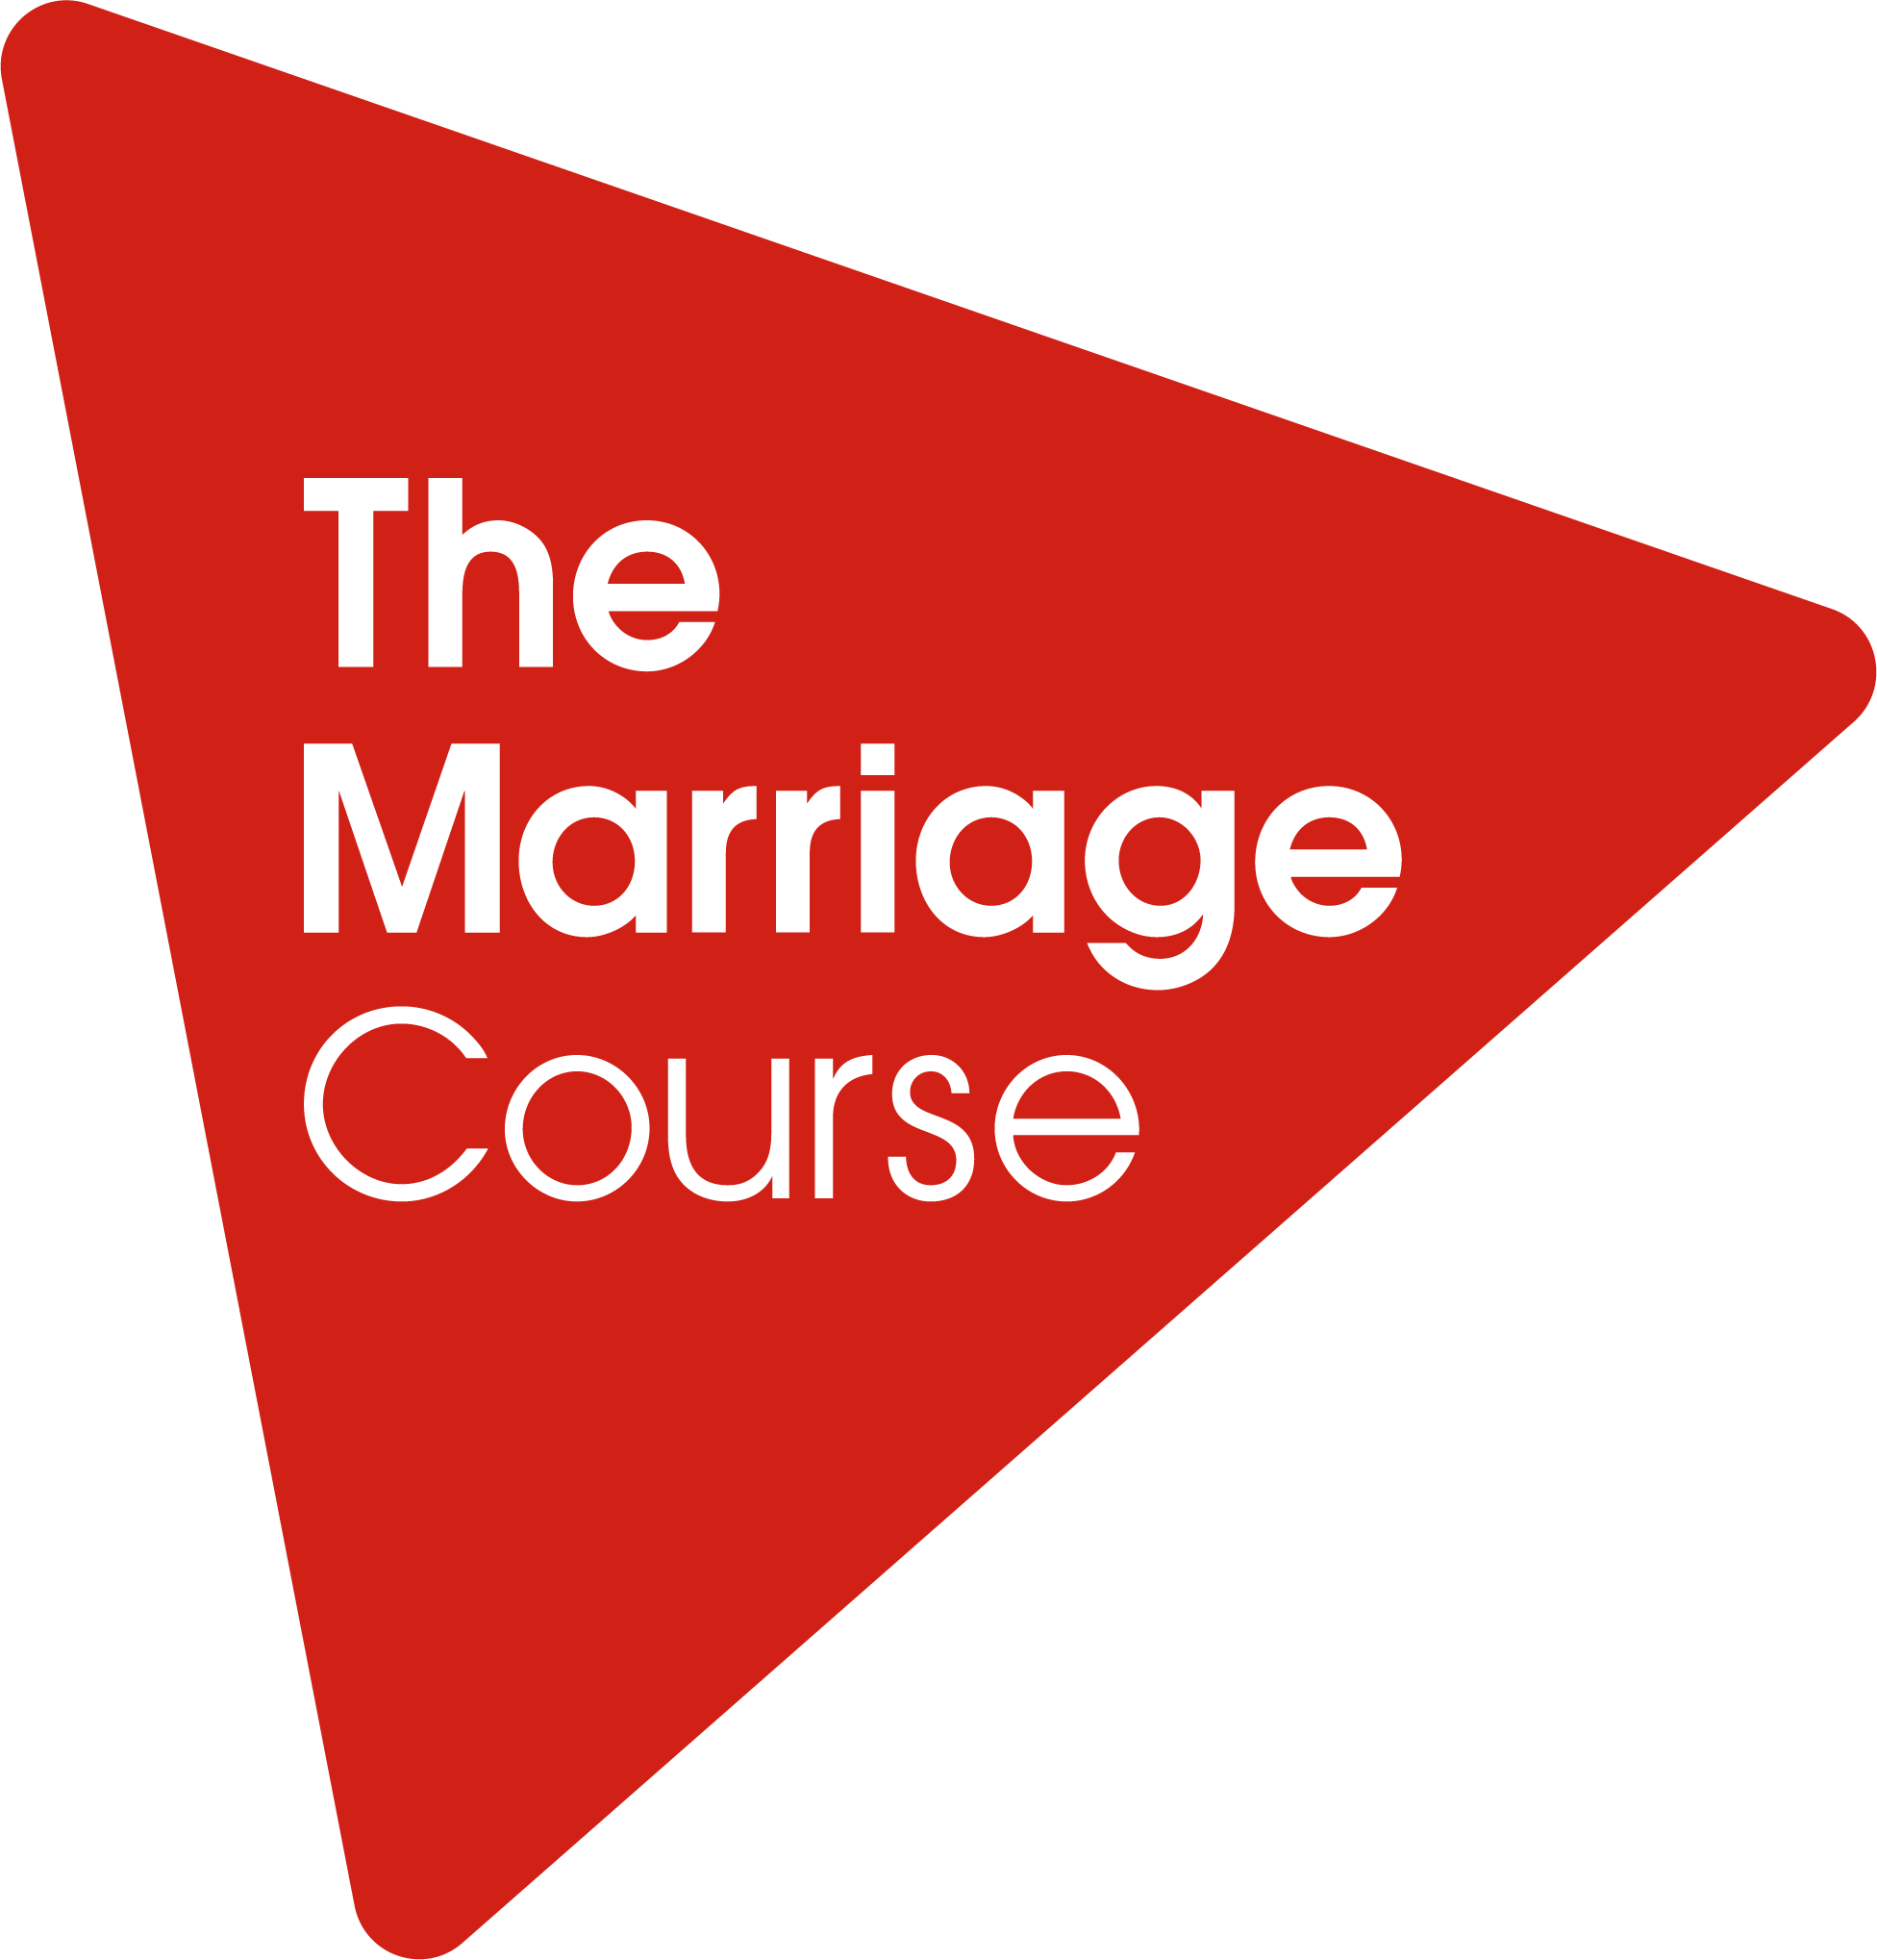 The Marriage Course logo